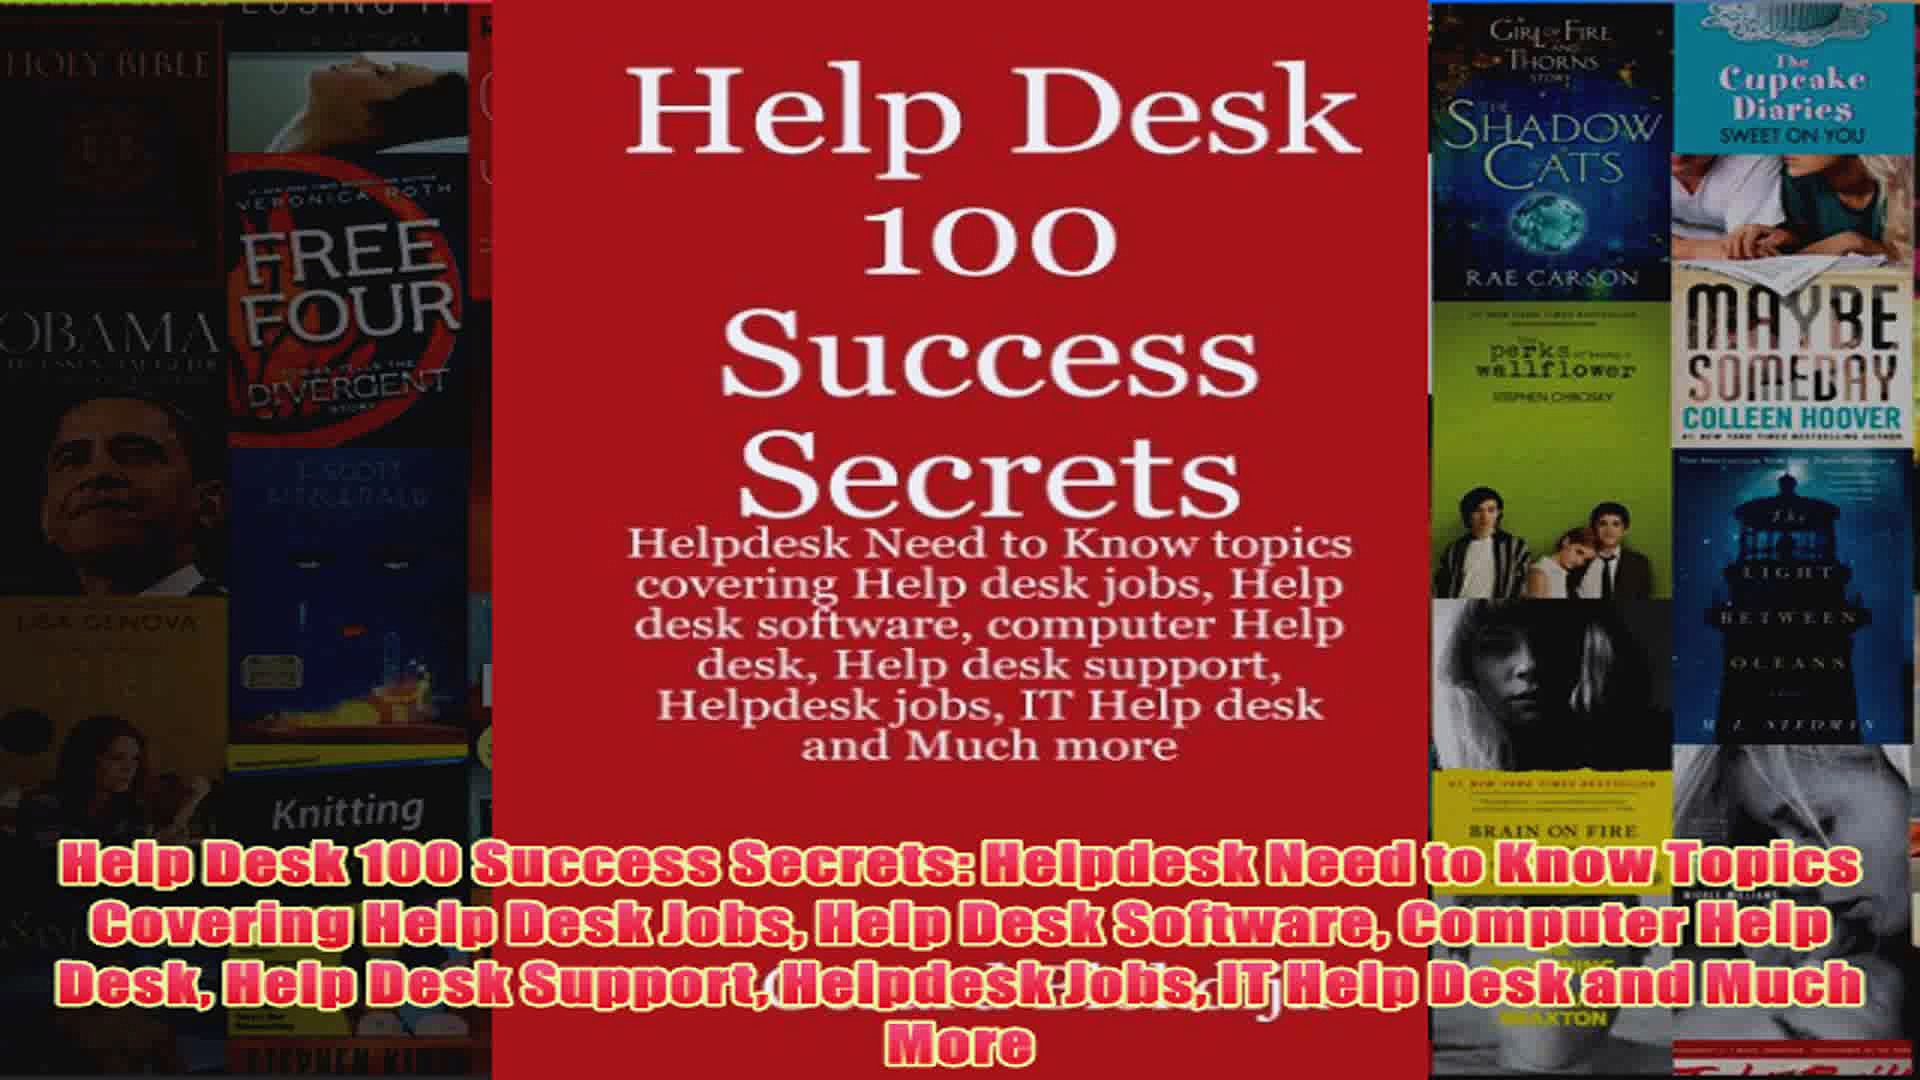 Download PDF  Help Desk 100 Success Secrets Helpdesk Need to Know Topics Covering Help Desk Jobs Help FULL FREE